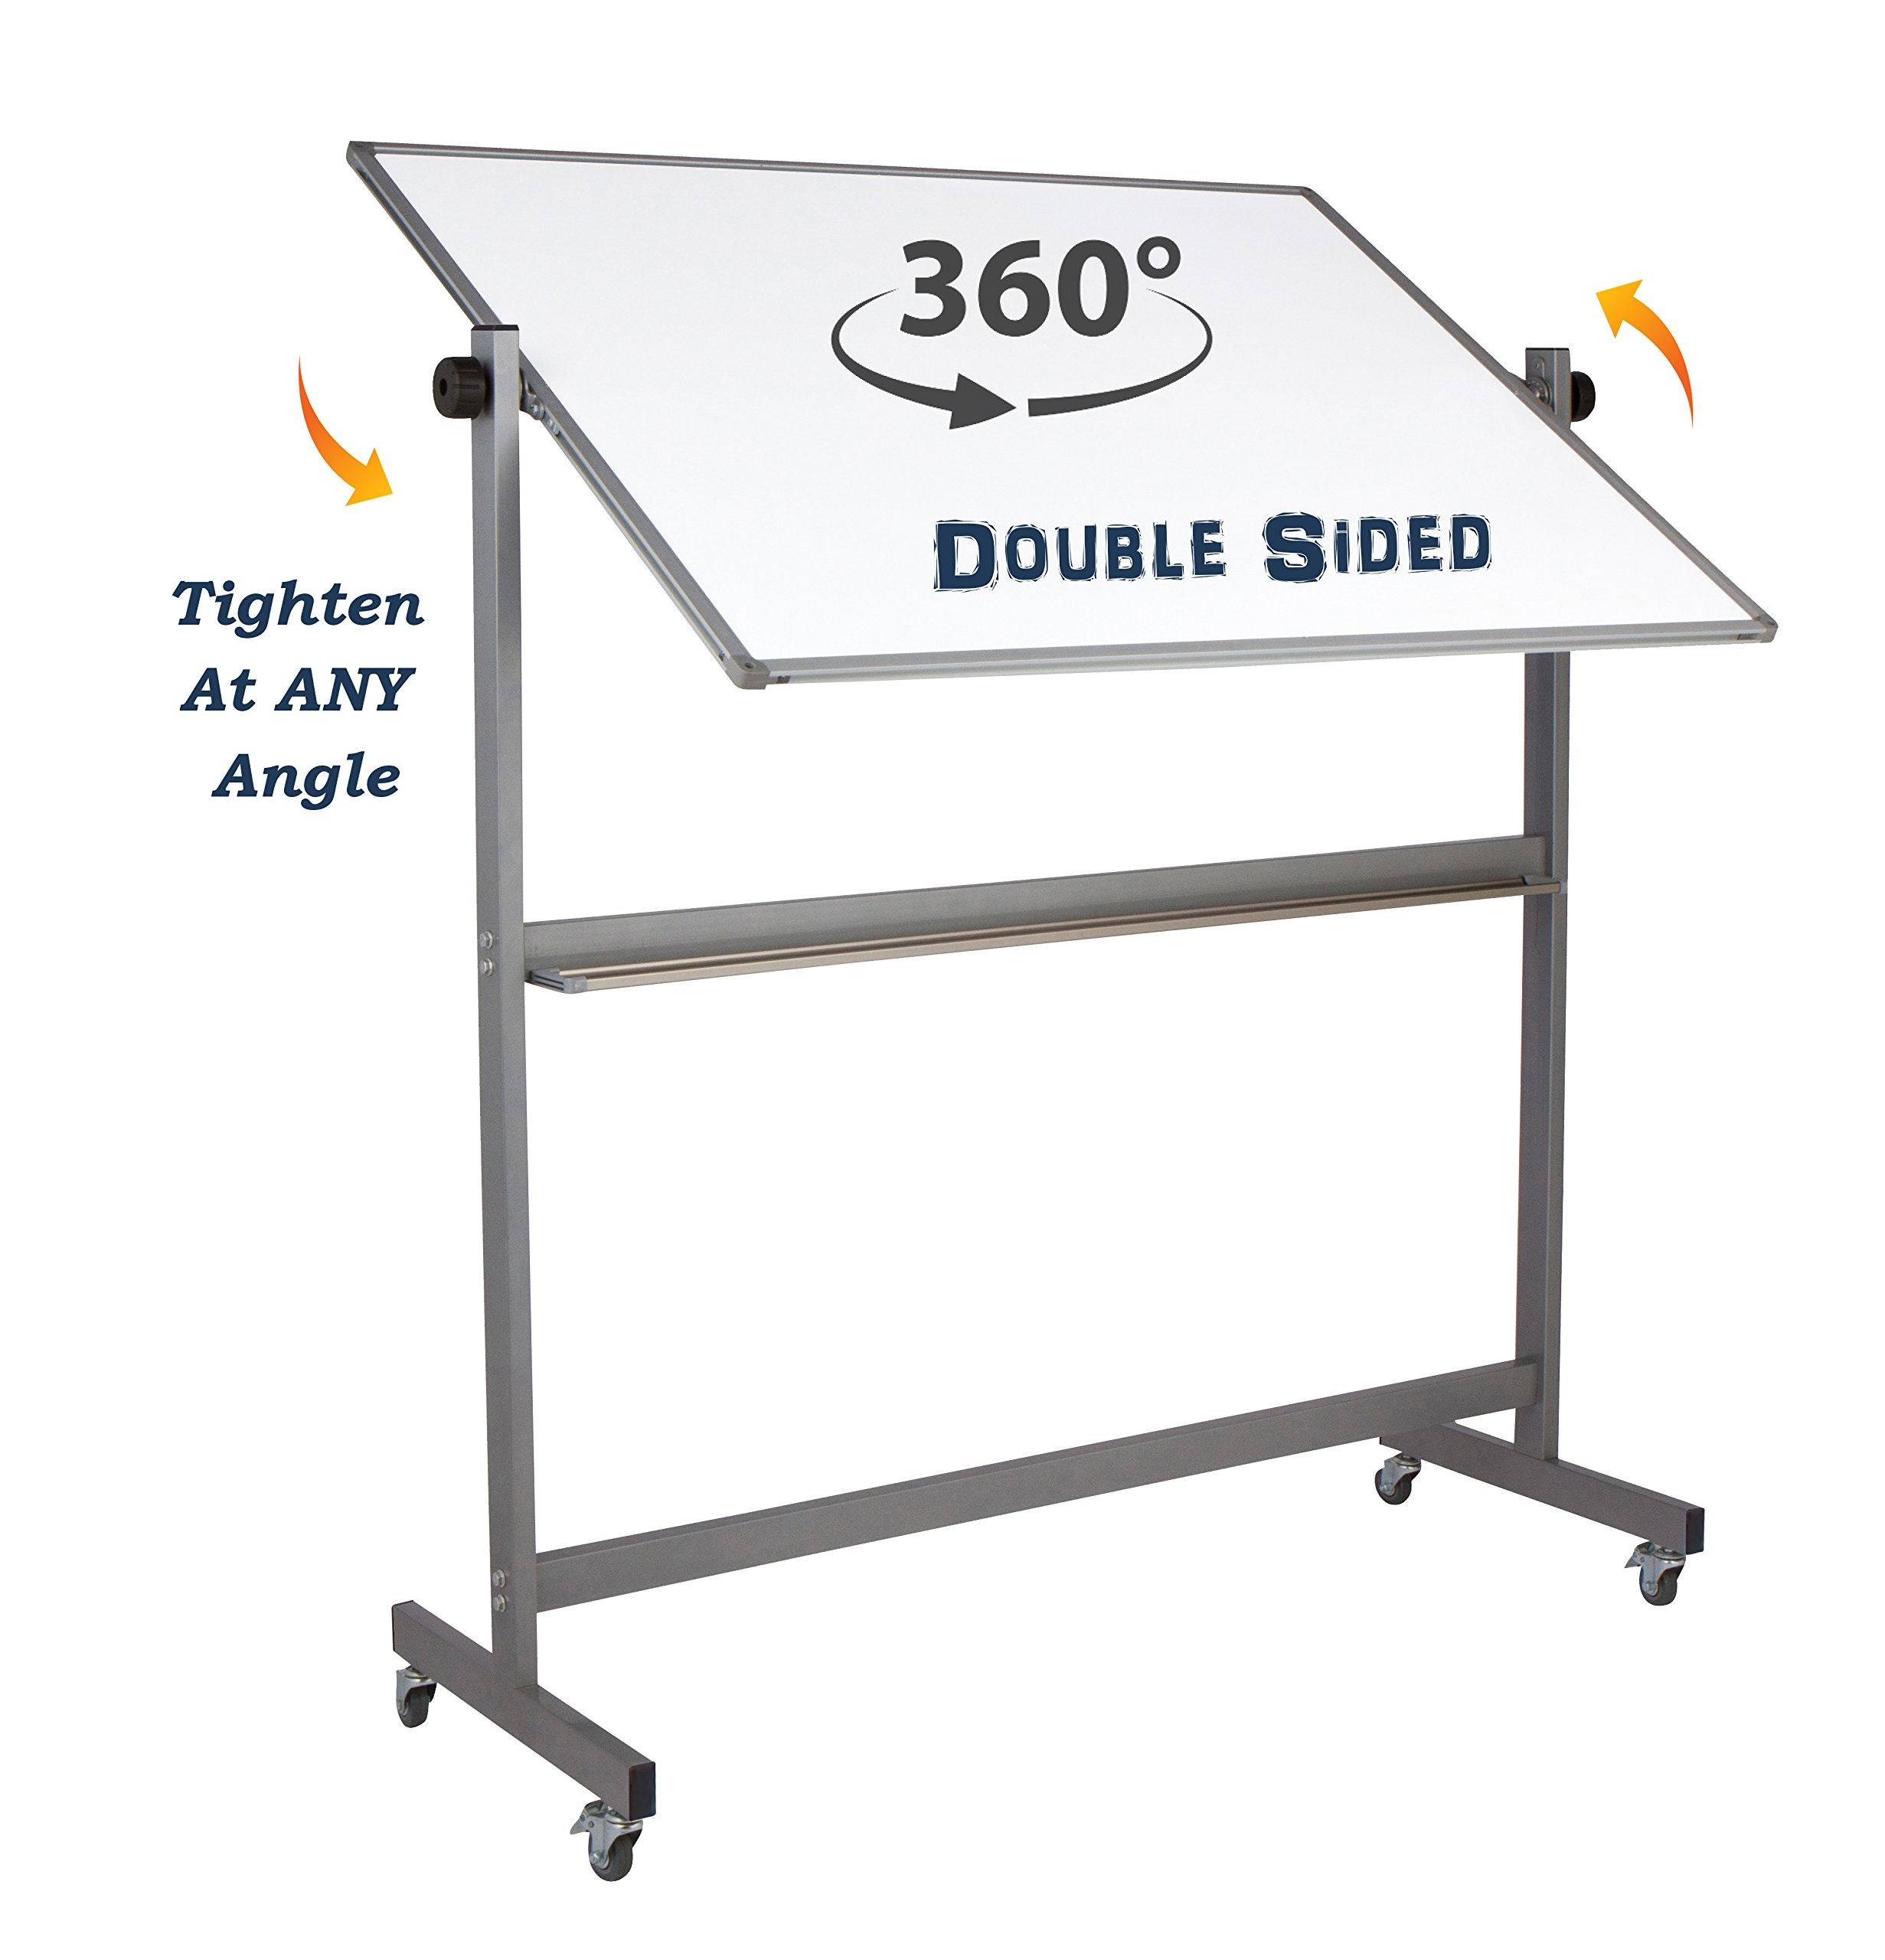 "Magnetic Mobile Whiteboard Large On Stand Double Sided Flip Over Dry Erase Reversible Portable Home Office Classroom Board 36 x 48"" Inch with 4 Markers 12 Magnets Eraser and Ruler Easel Aluminum Frame by Dapper Display (Image #3)"